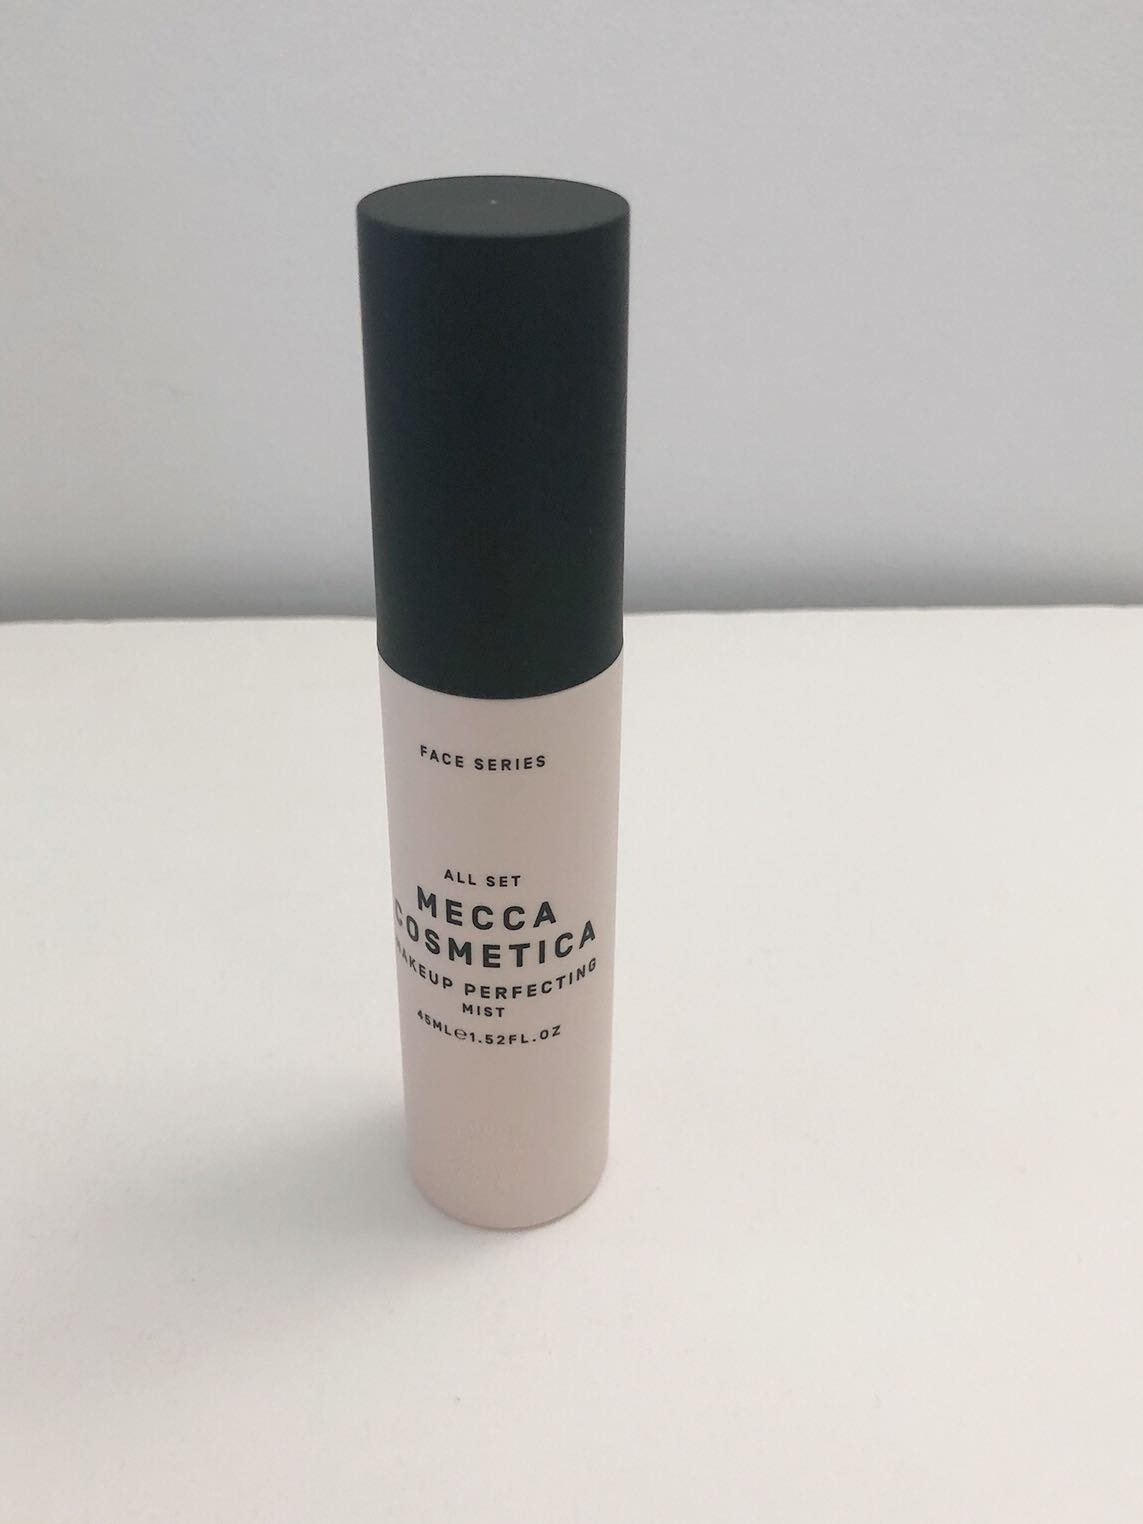 Mecca Cosmetica Makeup Perfecting Mist 45ml